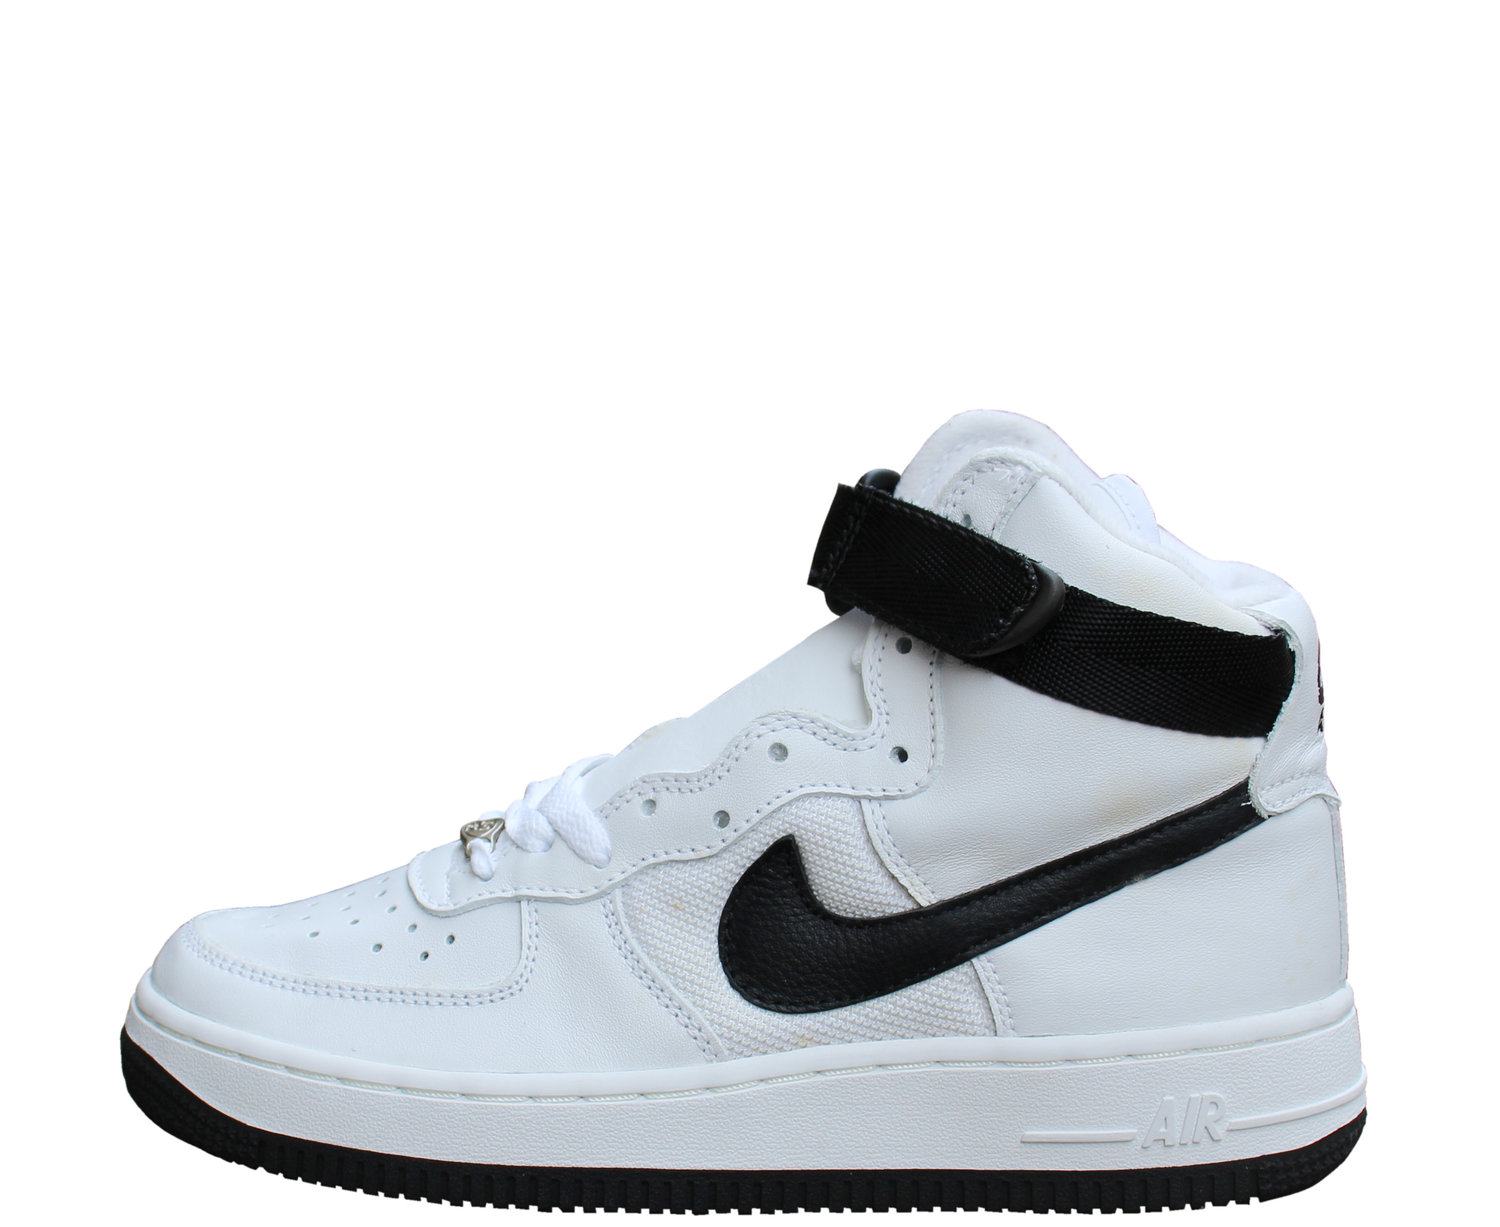 Kids Nike Air Force 1 High White Black Size 5 5 Ds Roots